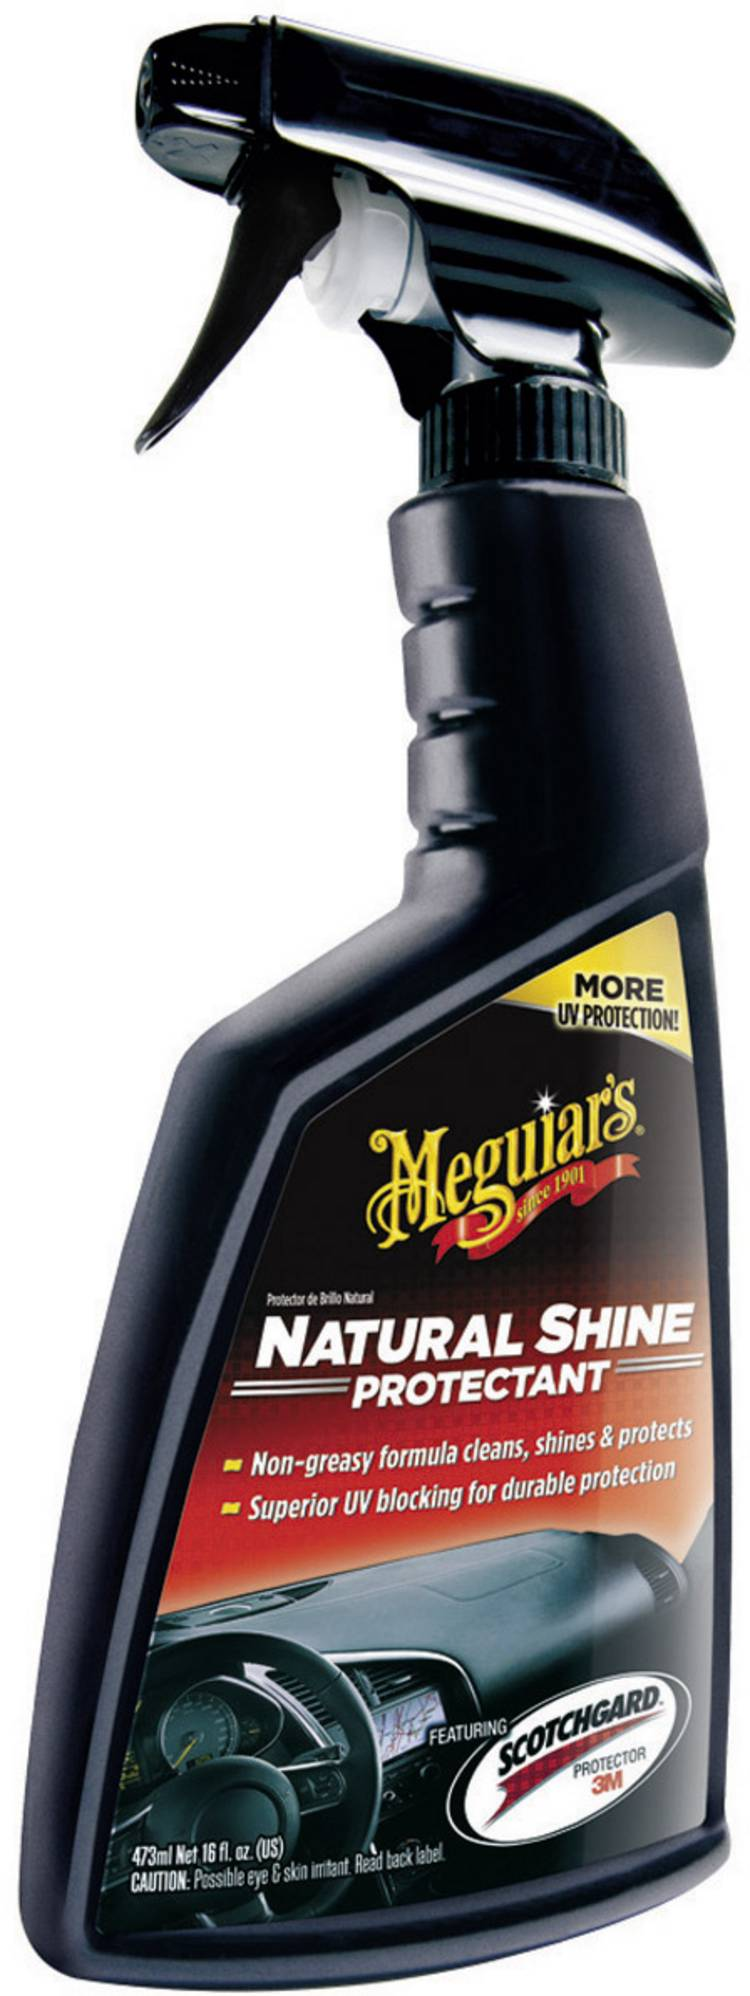 Image of Meguiars Natural Shine Protectant G4116 473 ml